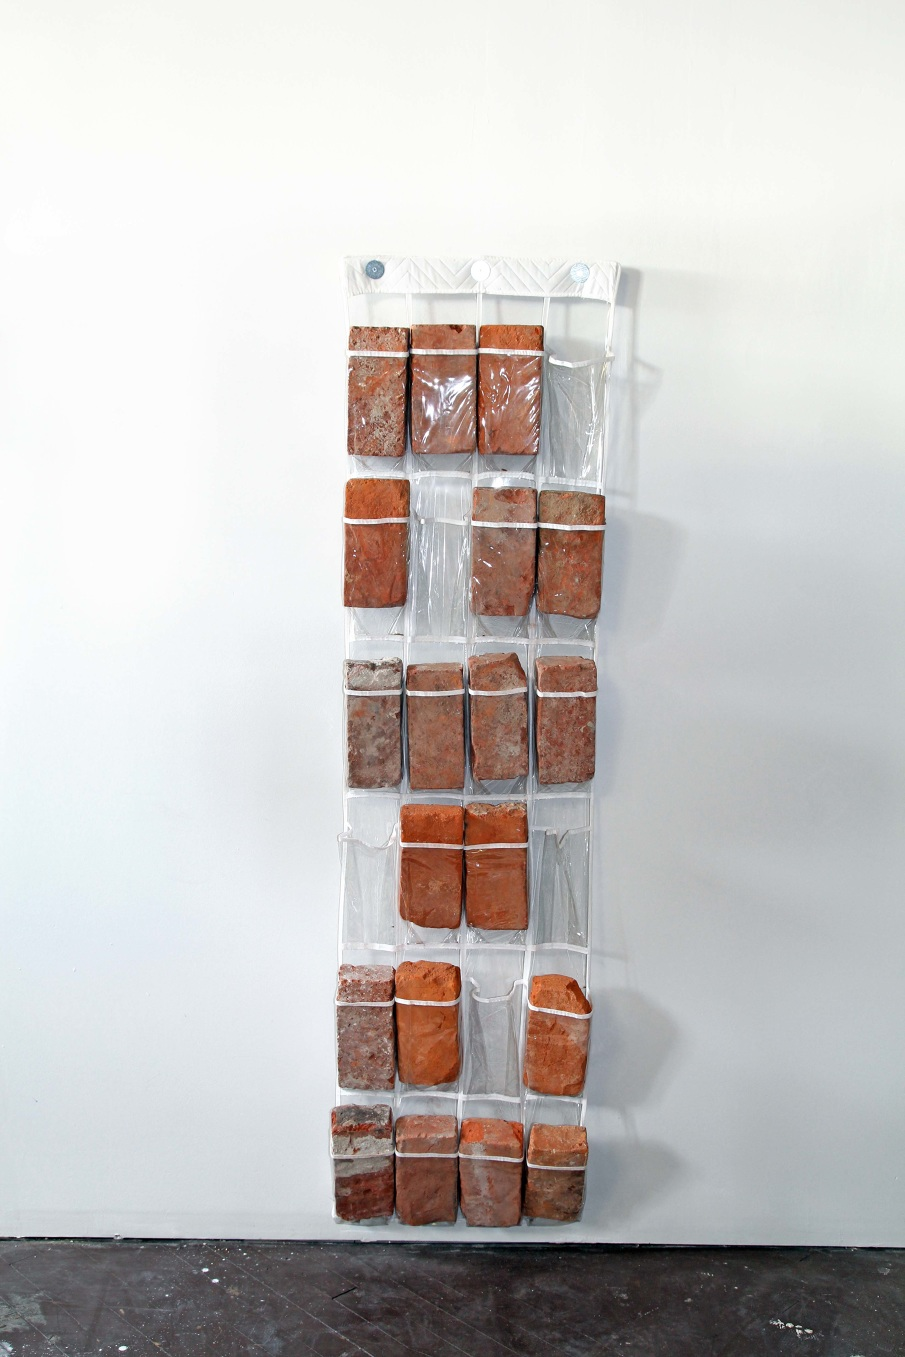 Kasey Toomey   Brick Rack , 2014/2017  Found Bricks, Plastic Shoe Rack, Wood  58x4x16 in.